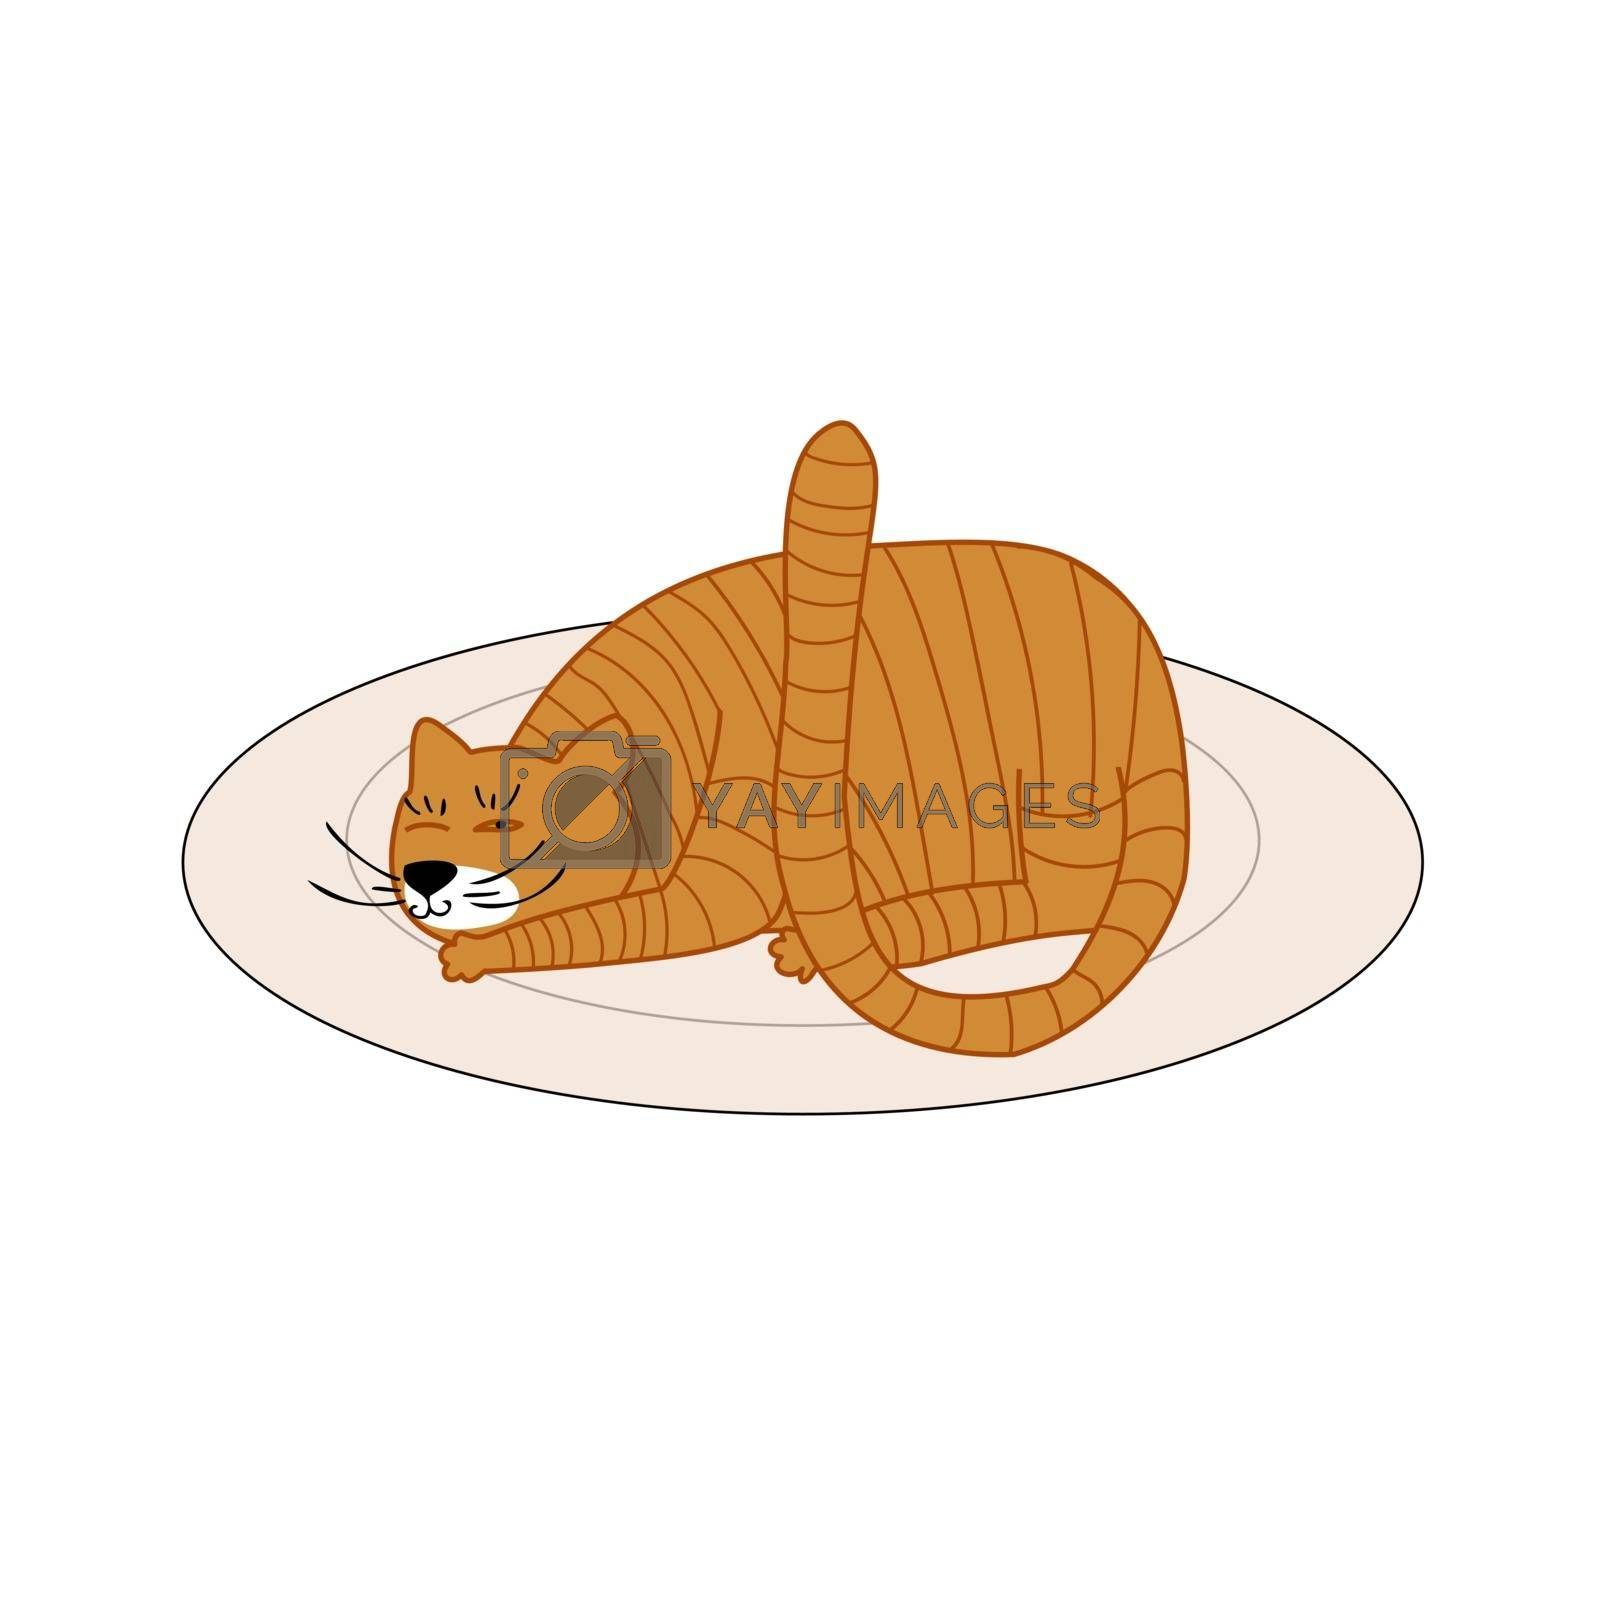 the cat lies on the carpet, squinting with one eye. Vector illustration in hand drawn style for children